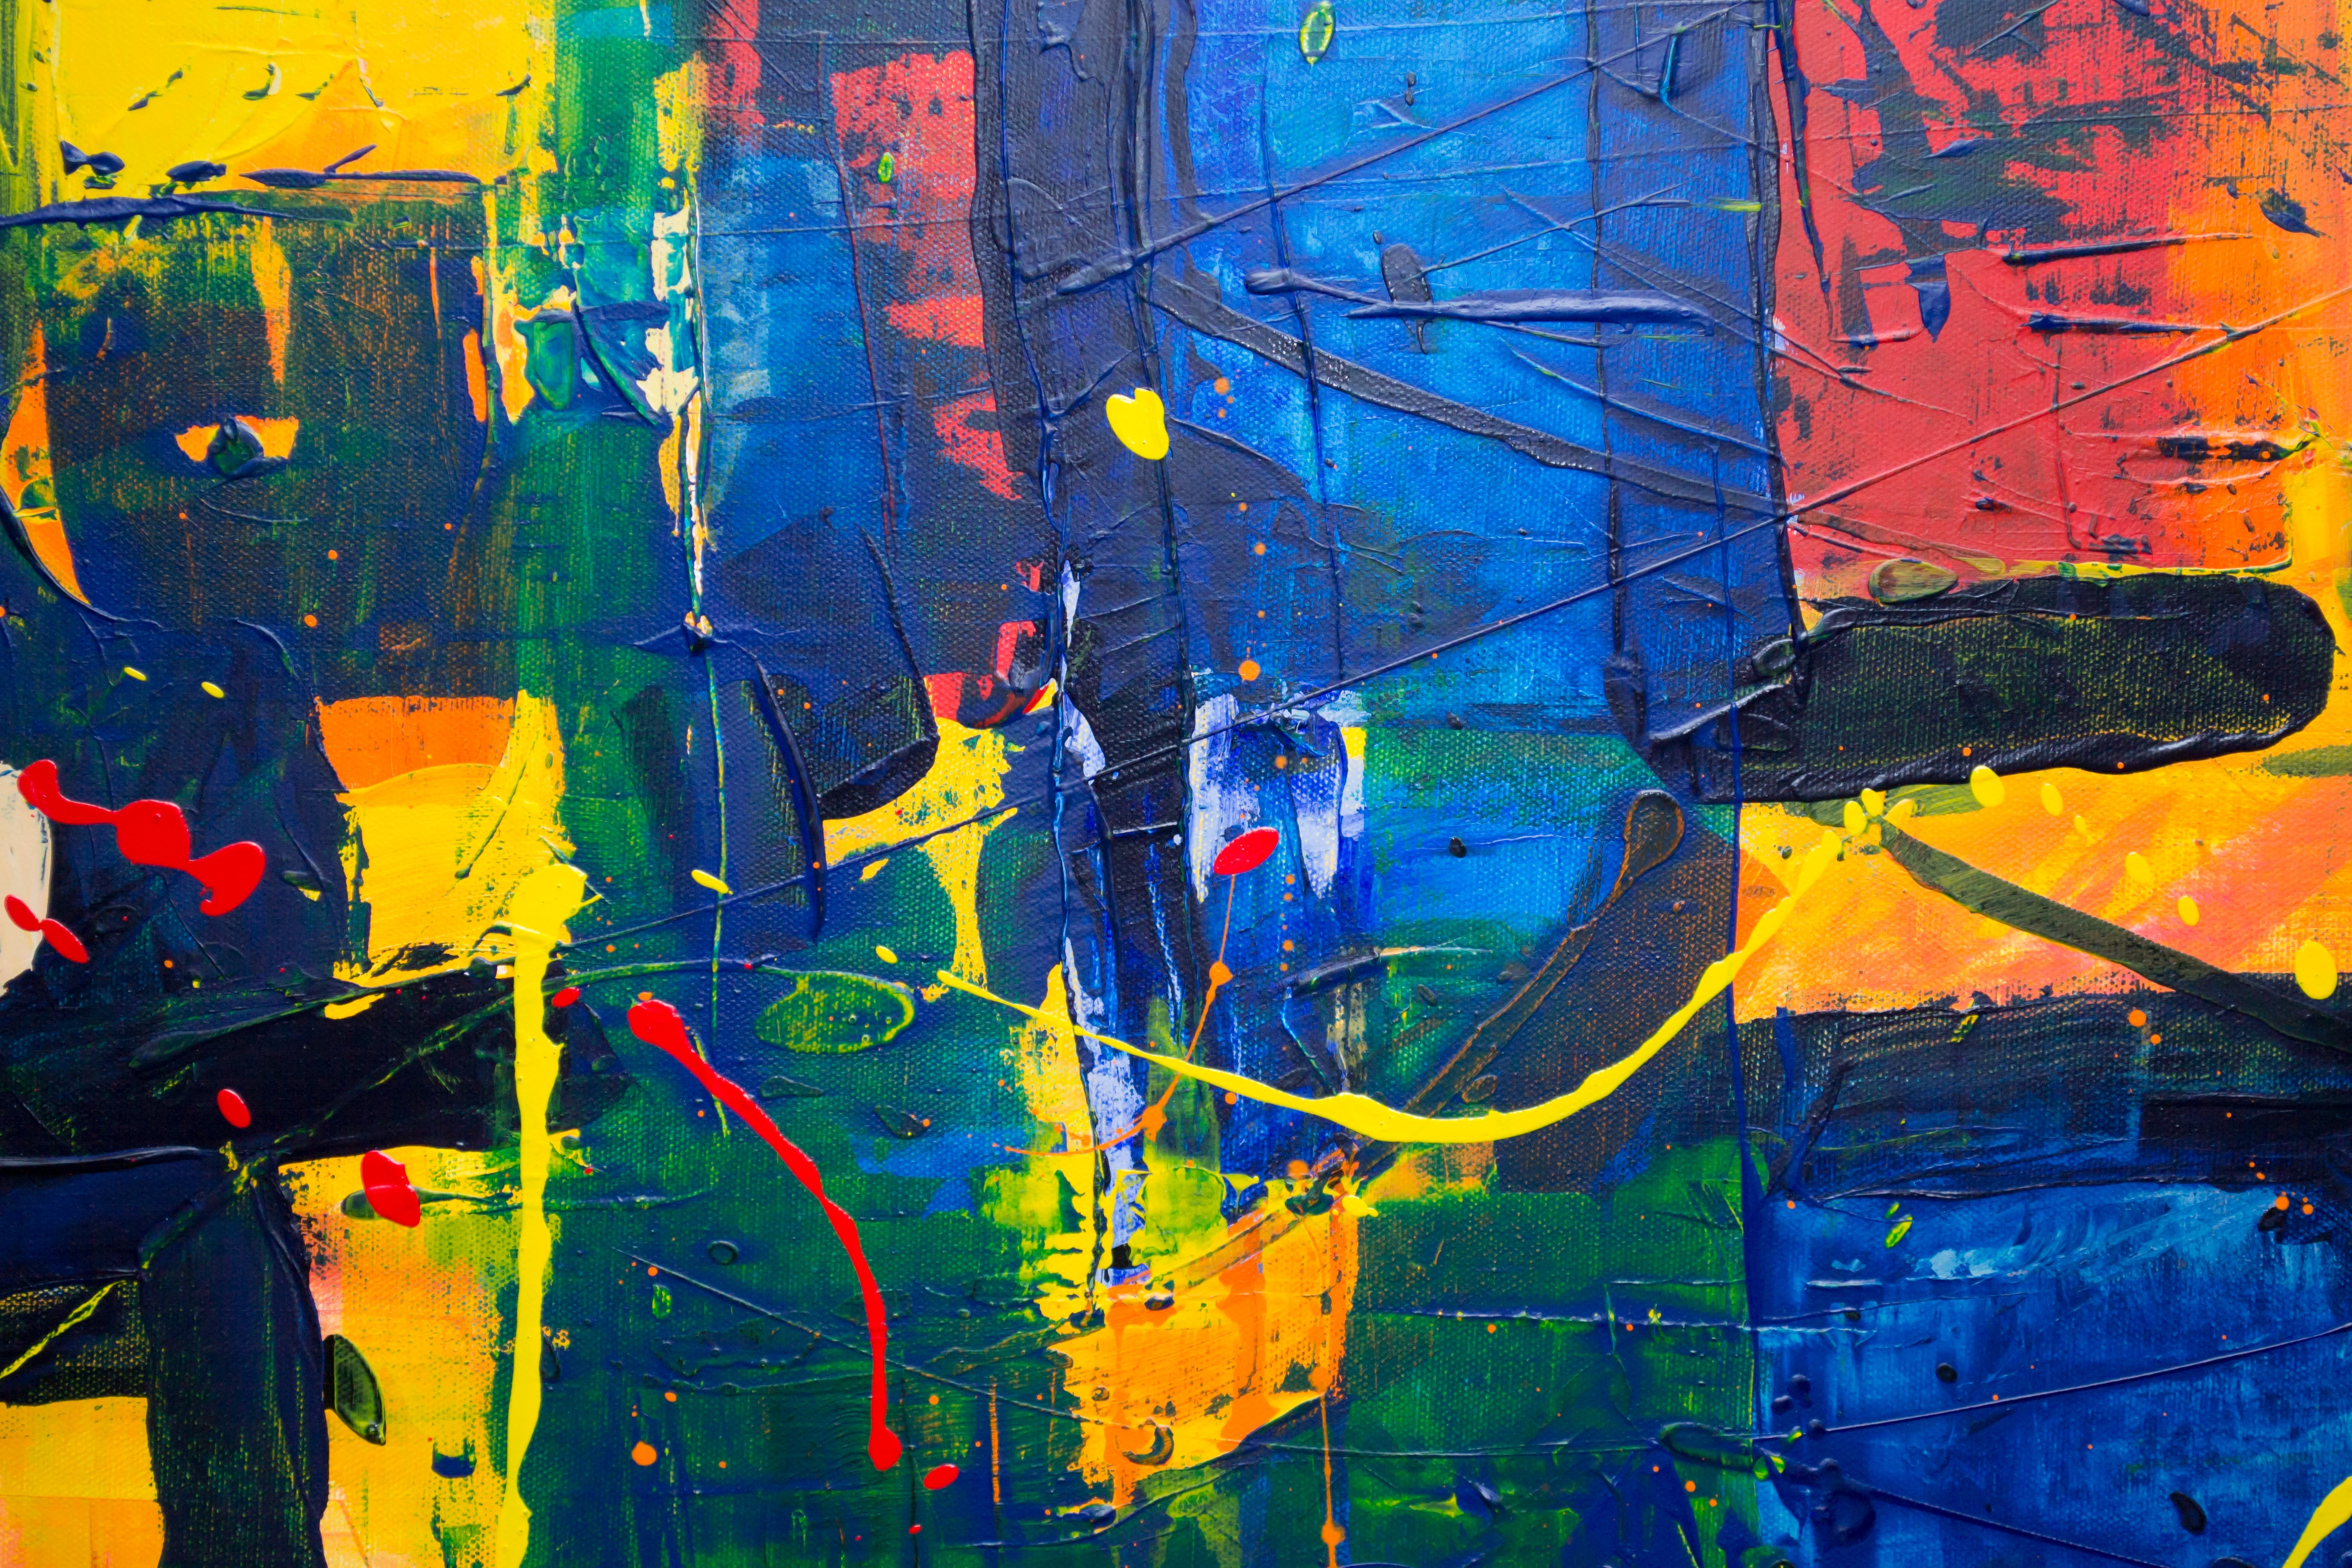 multicolored abstract artwork